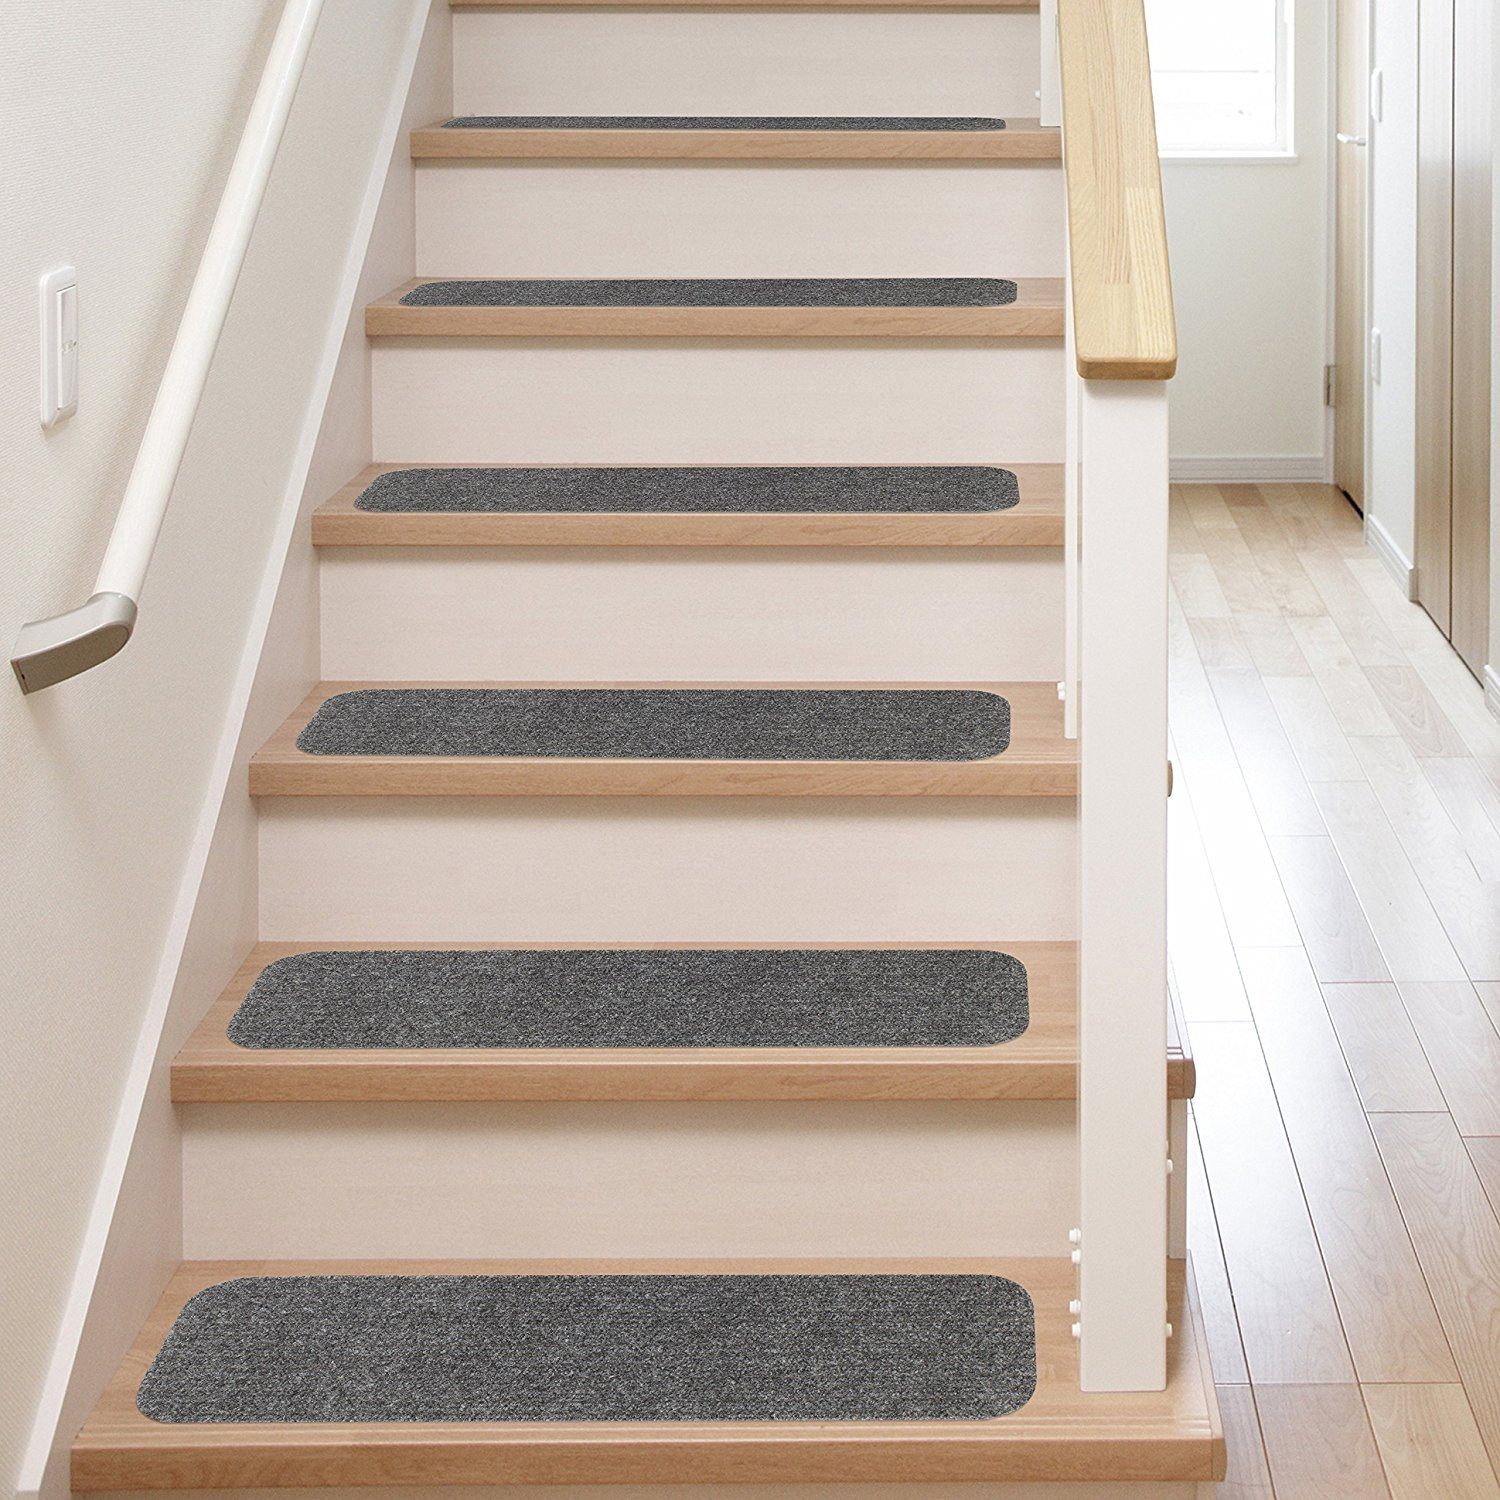 20 Photo Of Stair Tread Carpet Pads